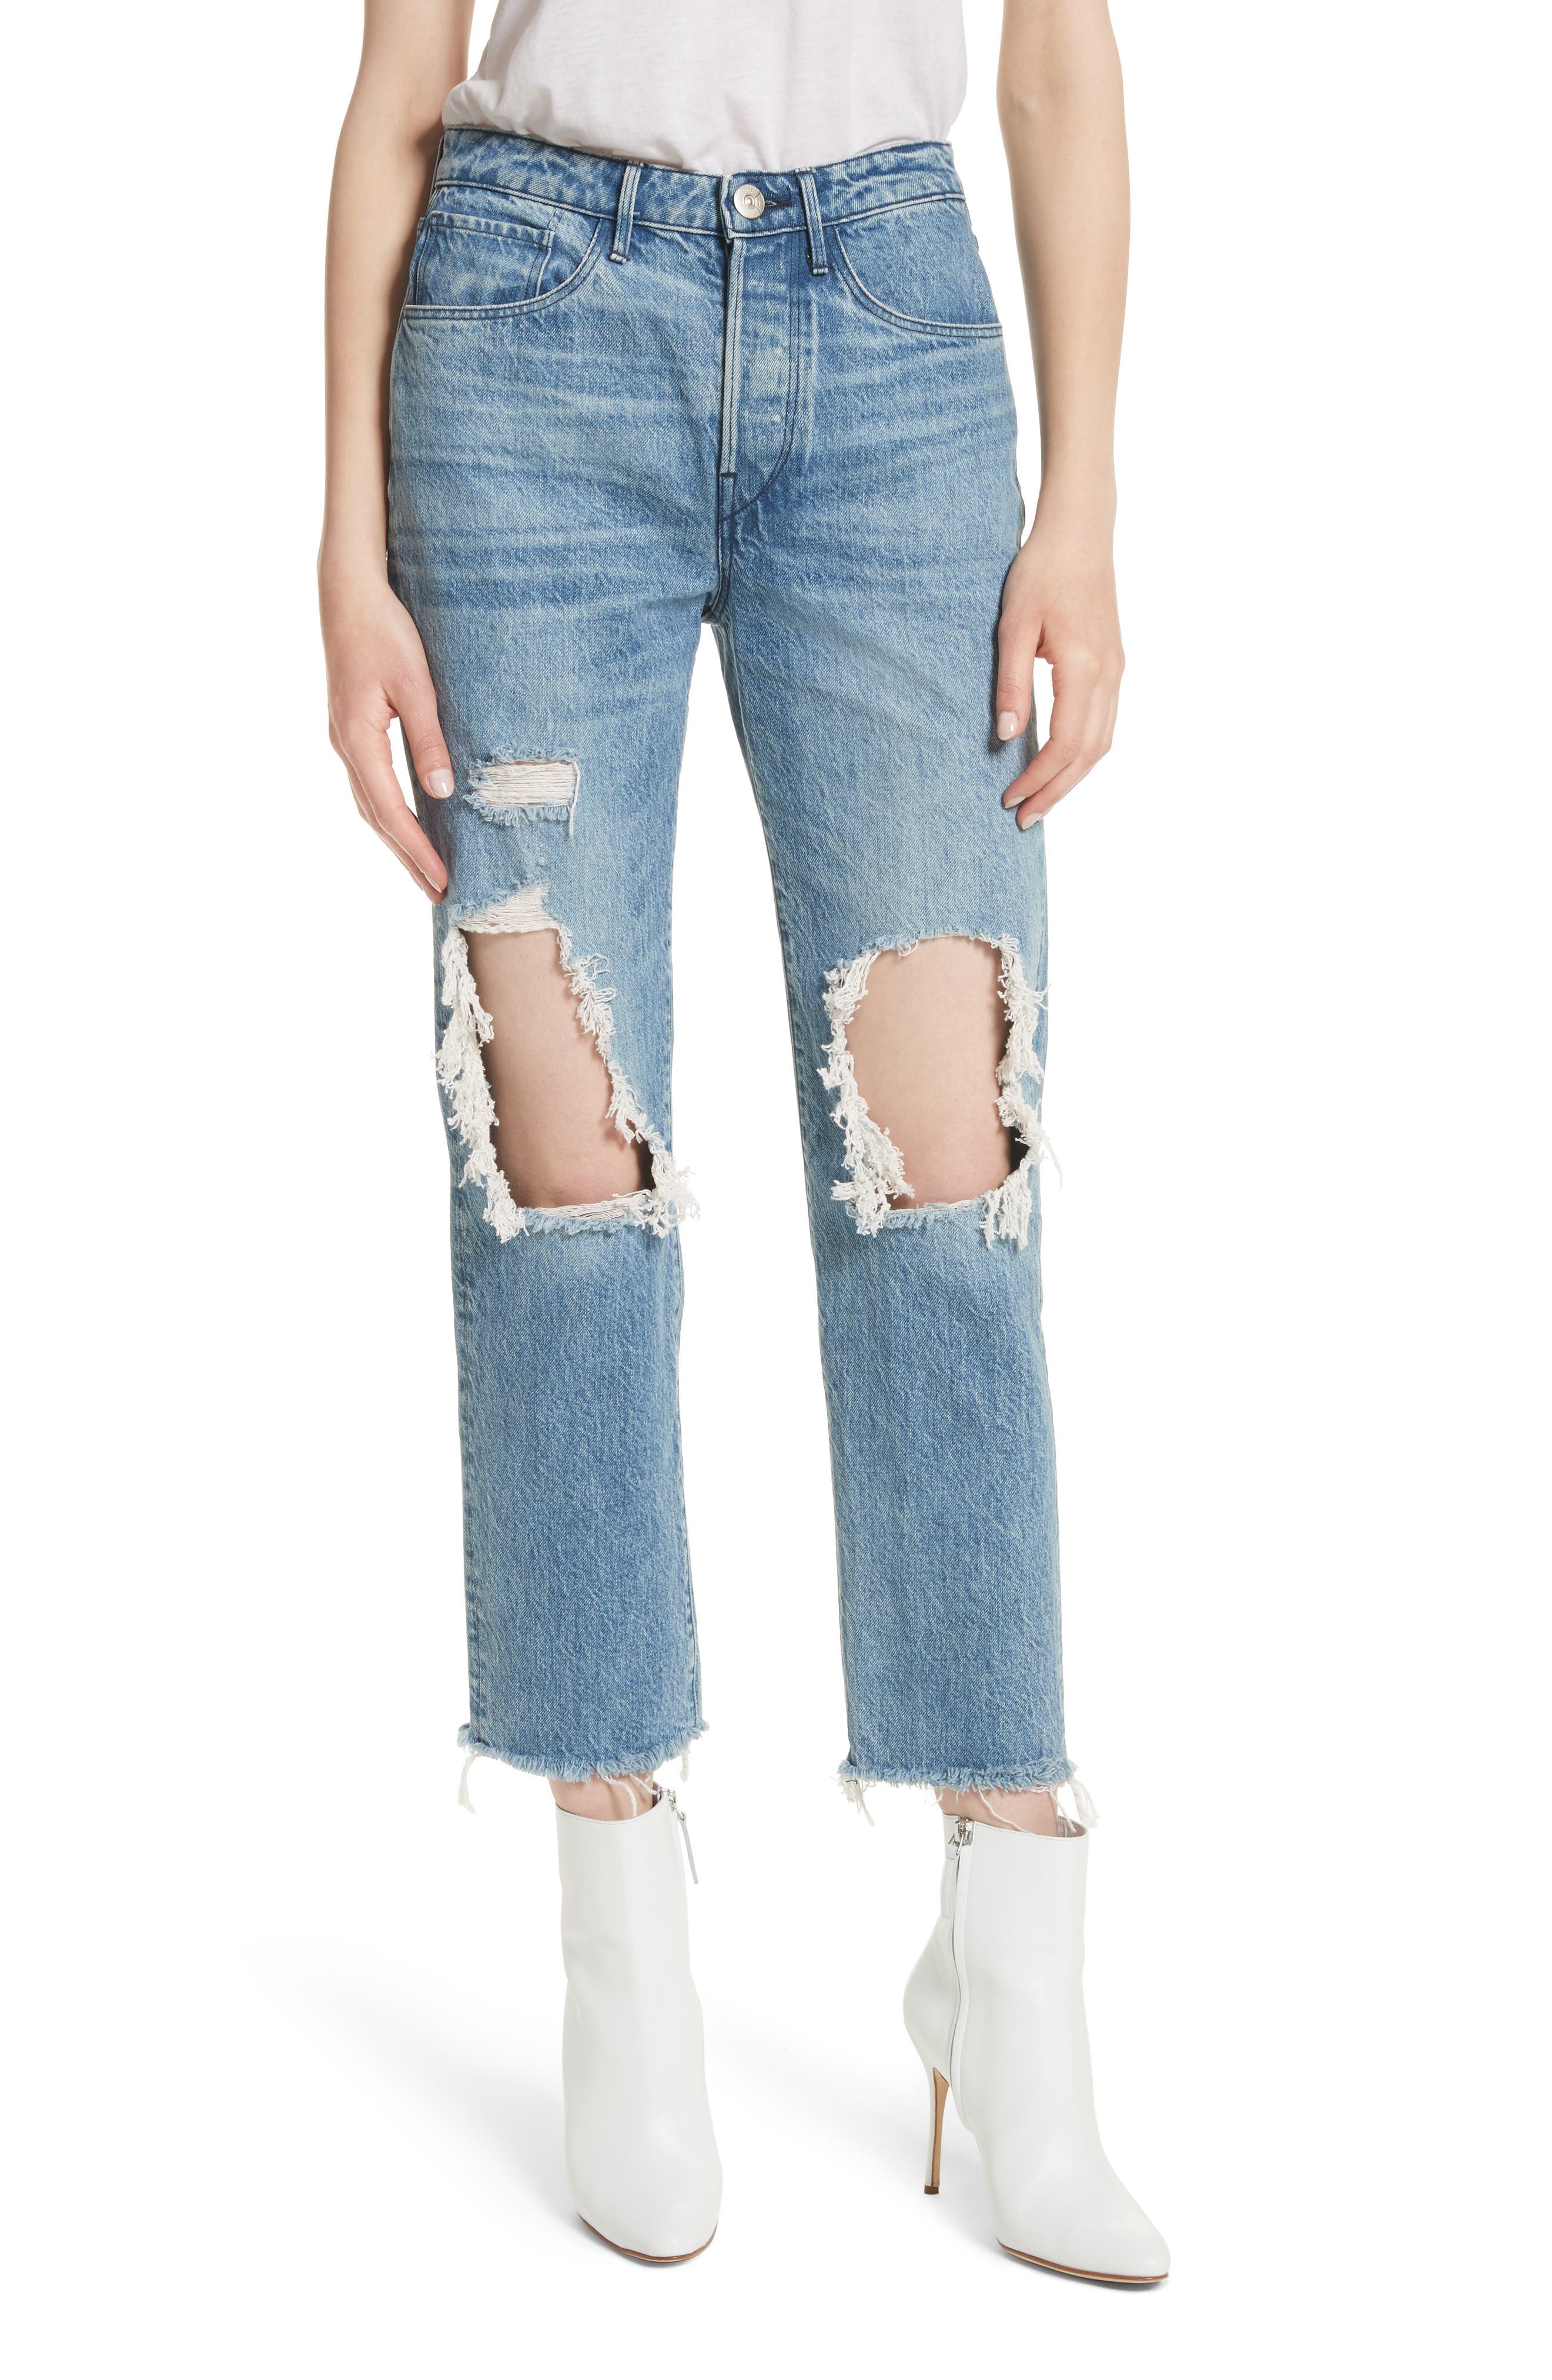 W3 Higher Ground Ripped Crop Boyfriend Jeans,                         Main,                         color, Clutch